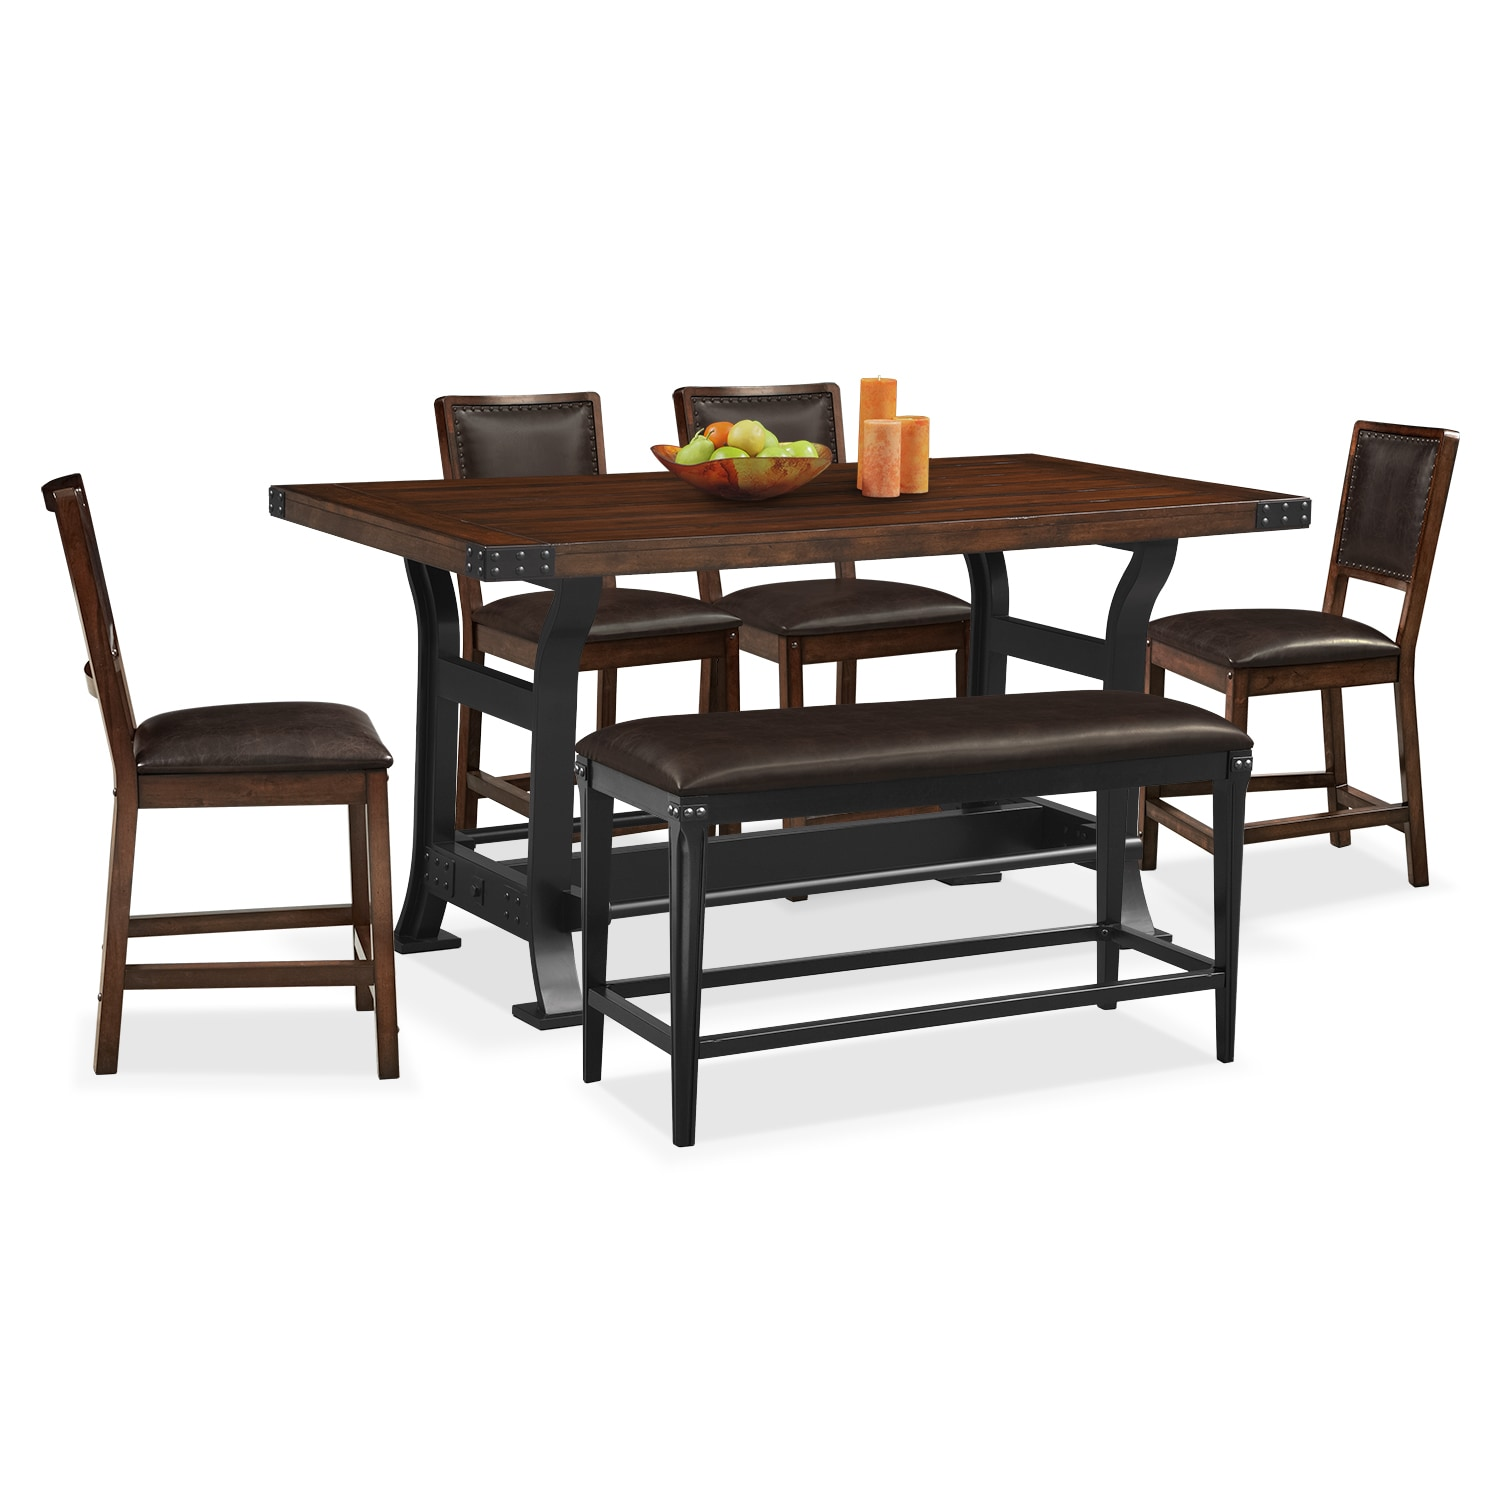 Dining Room Furniture - Newcastle 6 Pc. Counter-Height Dining Room w/ Bench